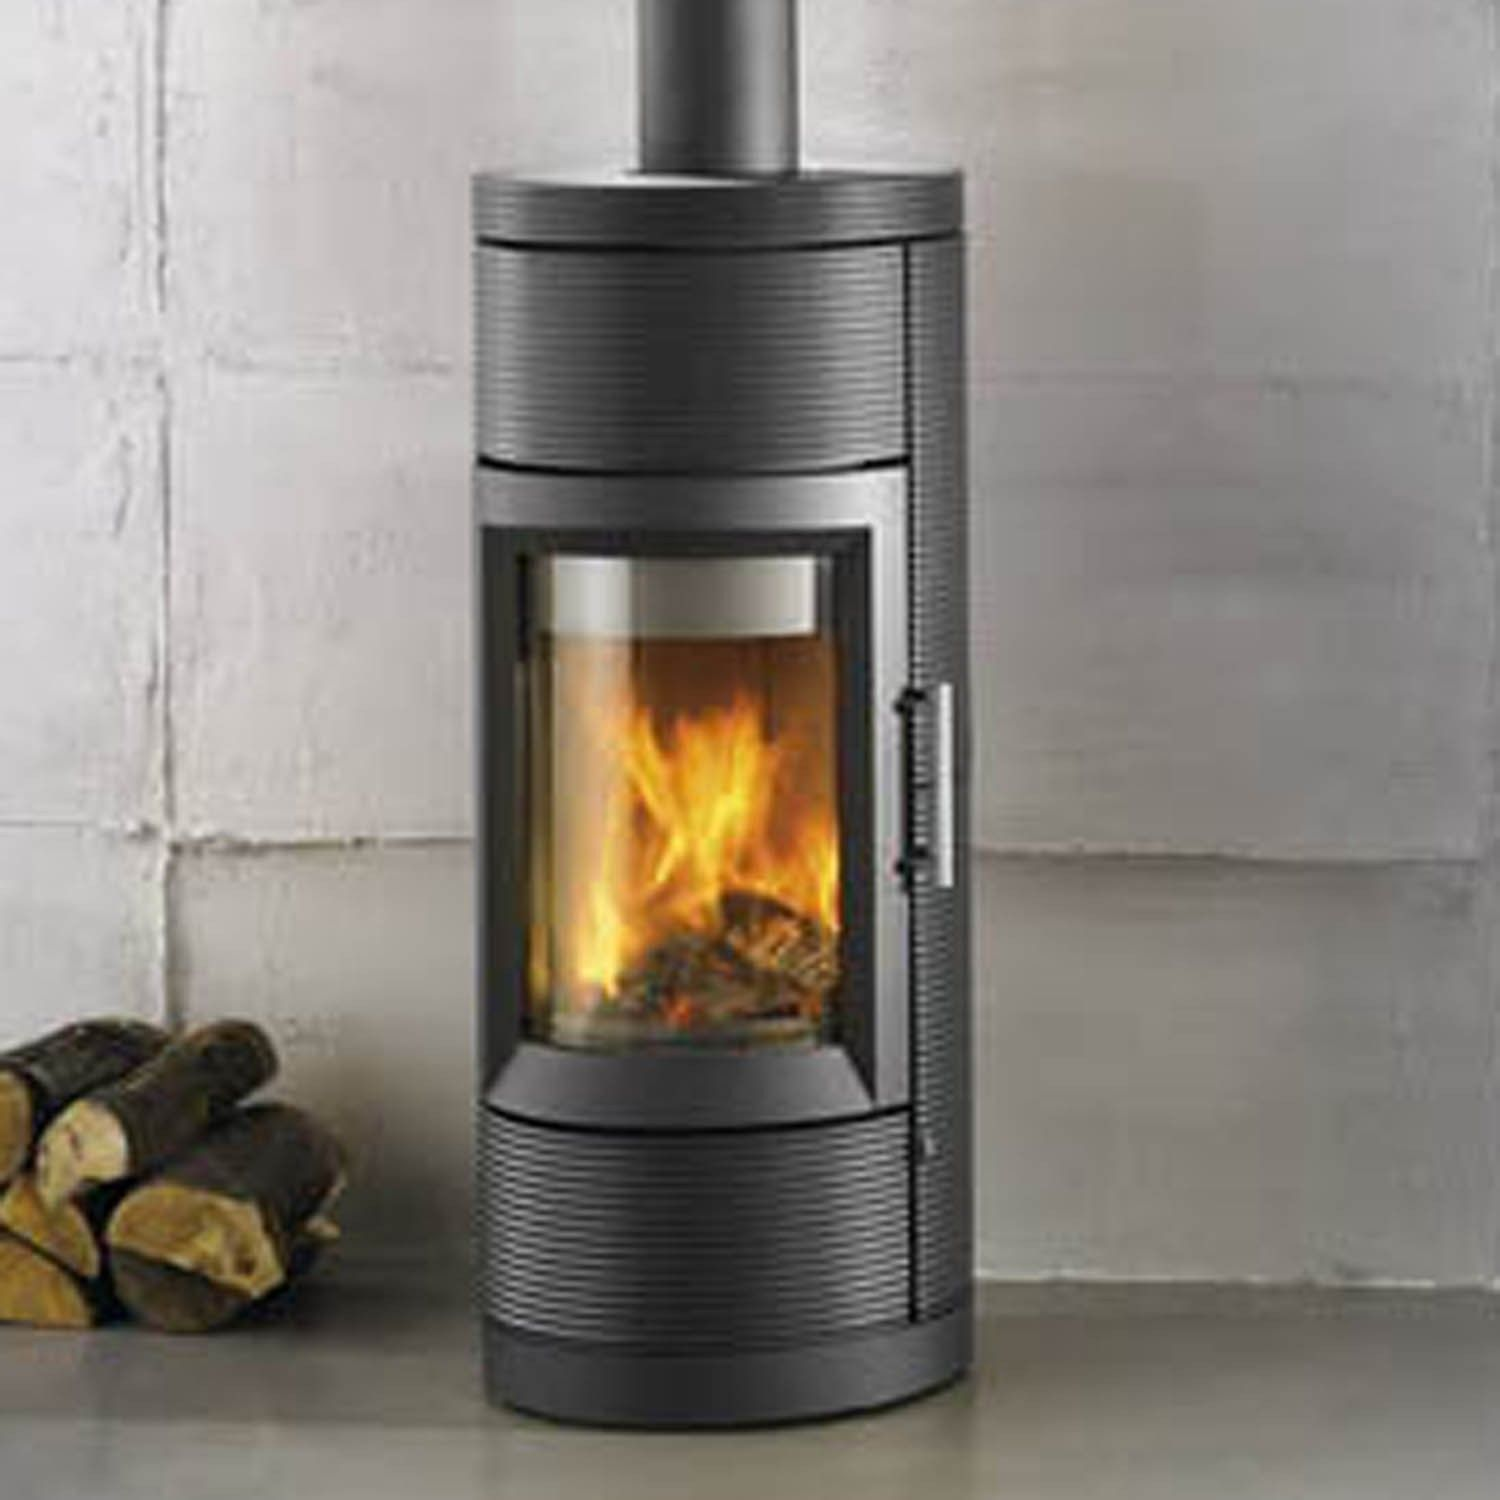 Lima 8150 wood stove with black lava finish by Hearthstone Heats